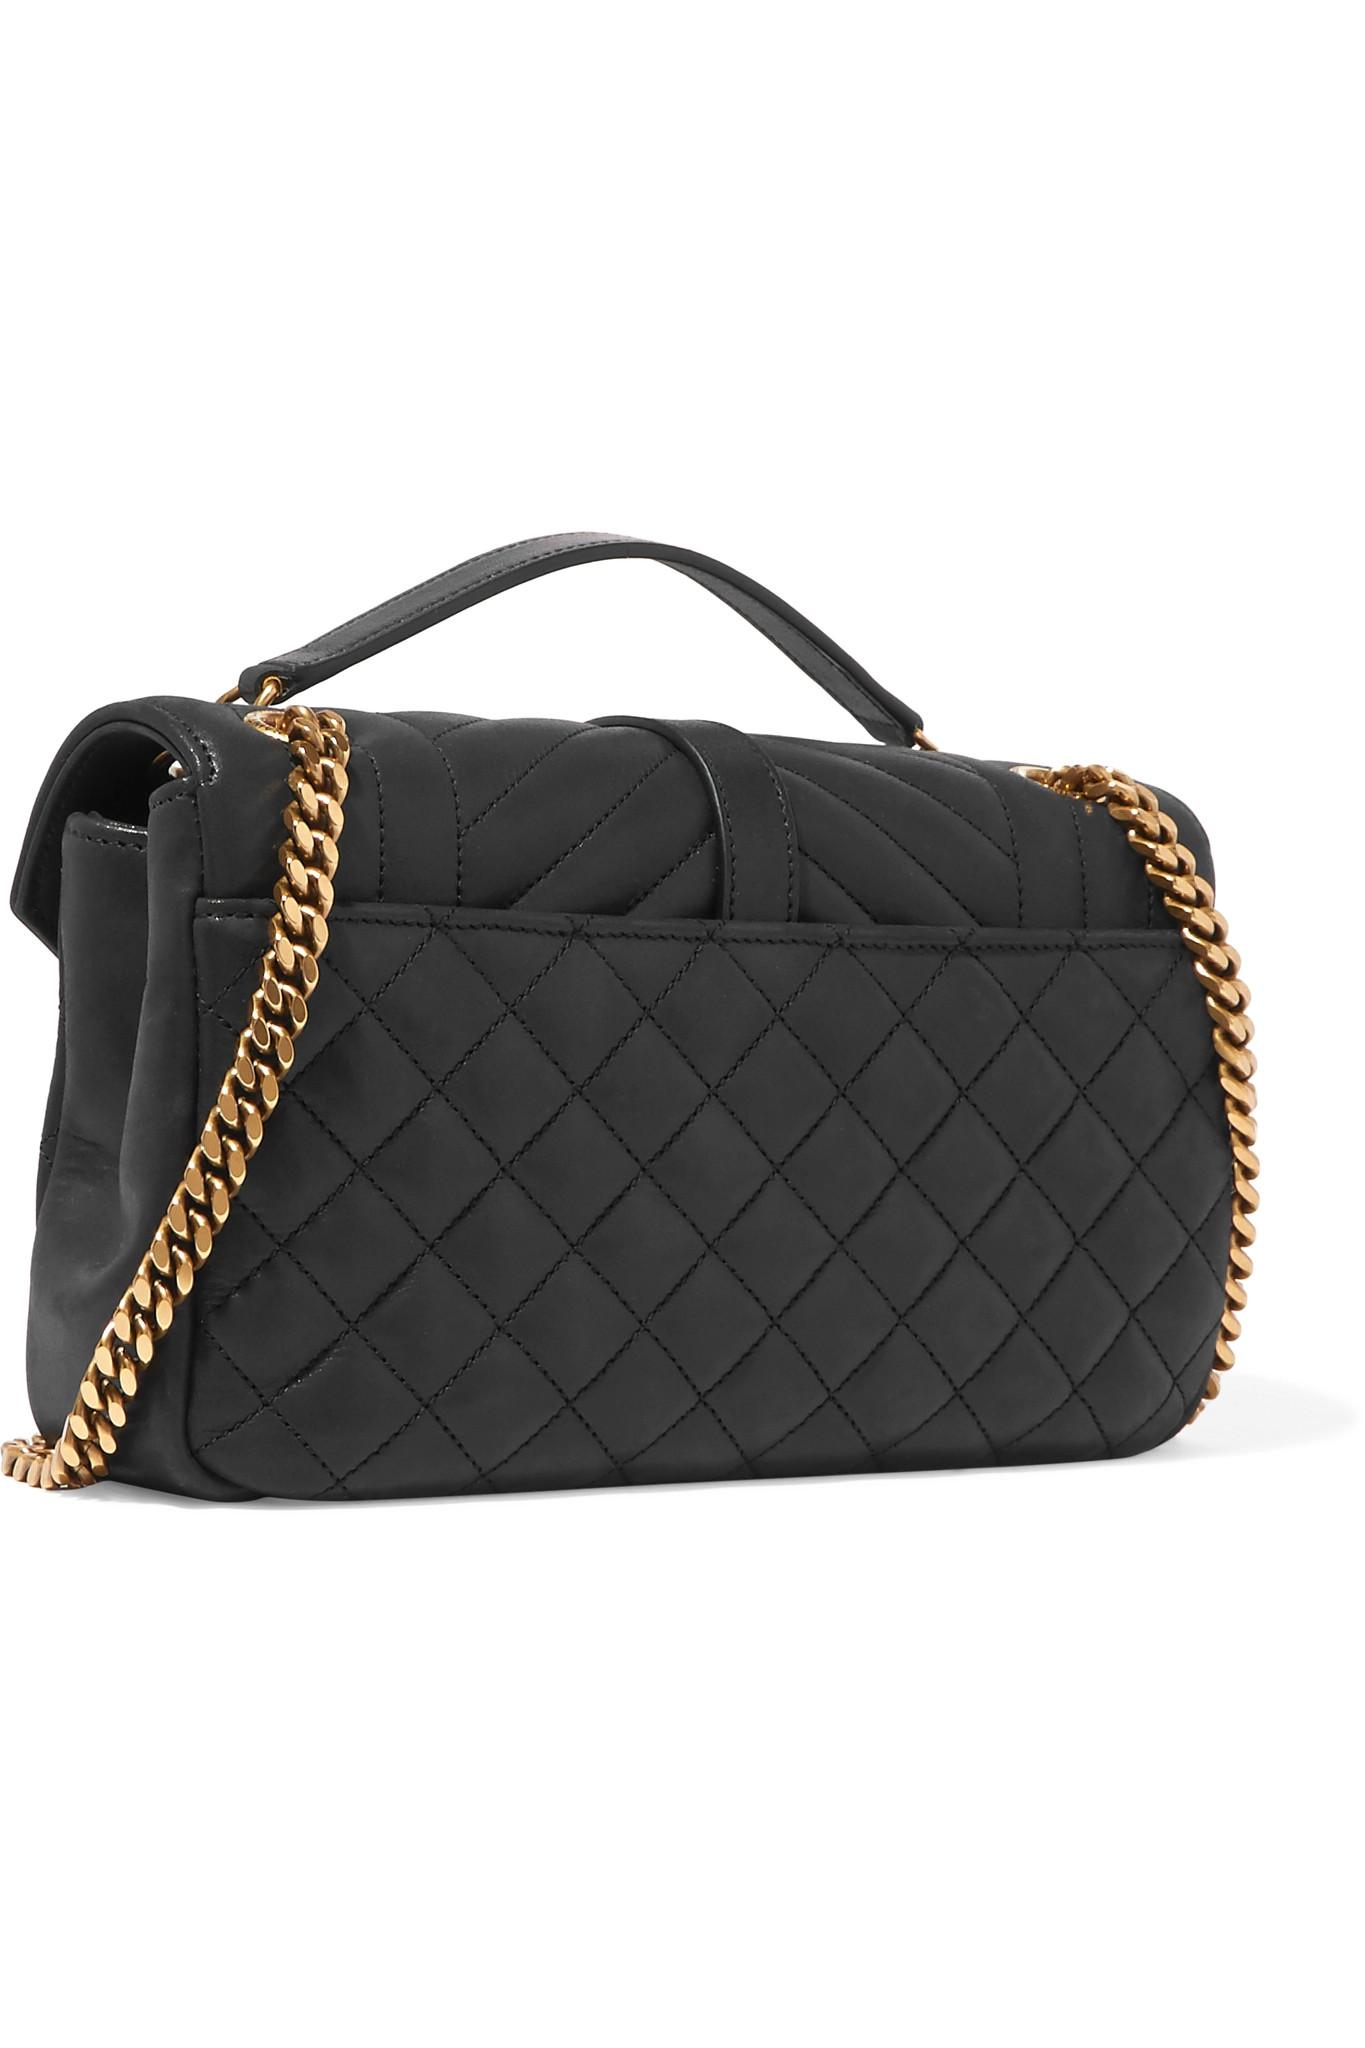 Lyst - Saint Laurent Soft Envelope Quilted Leather Shoulder Bag in Black 526feddf45fa8